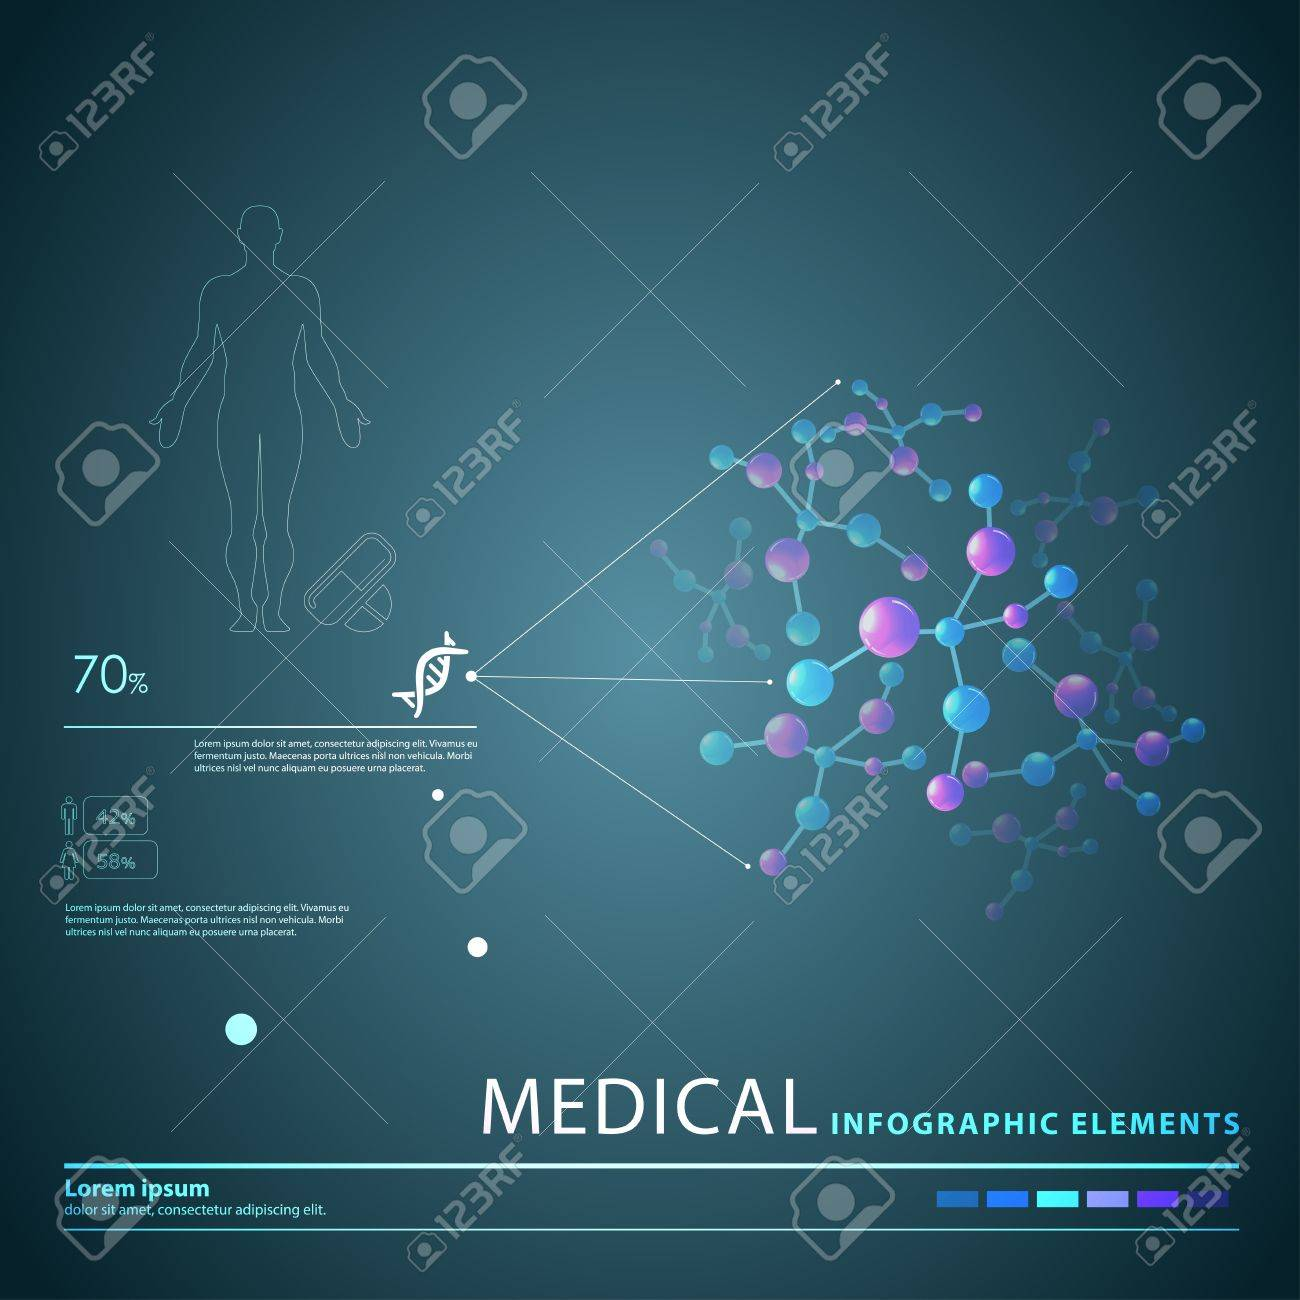 medical infographic elements Stock Vector - 21643716